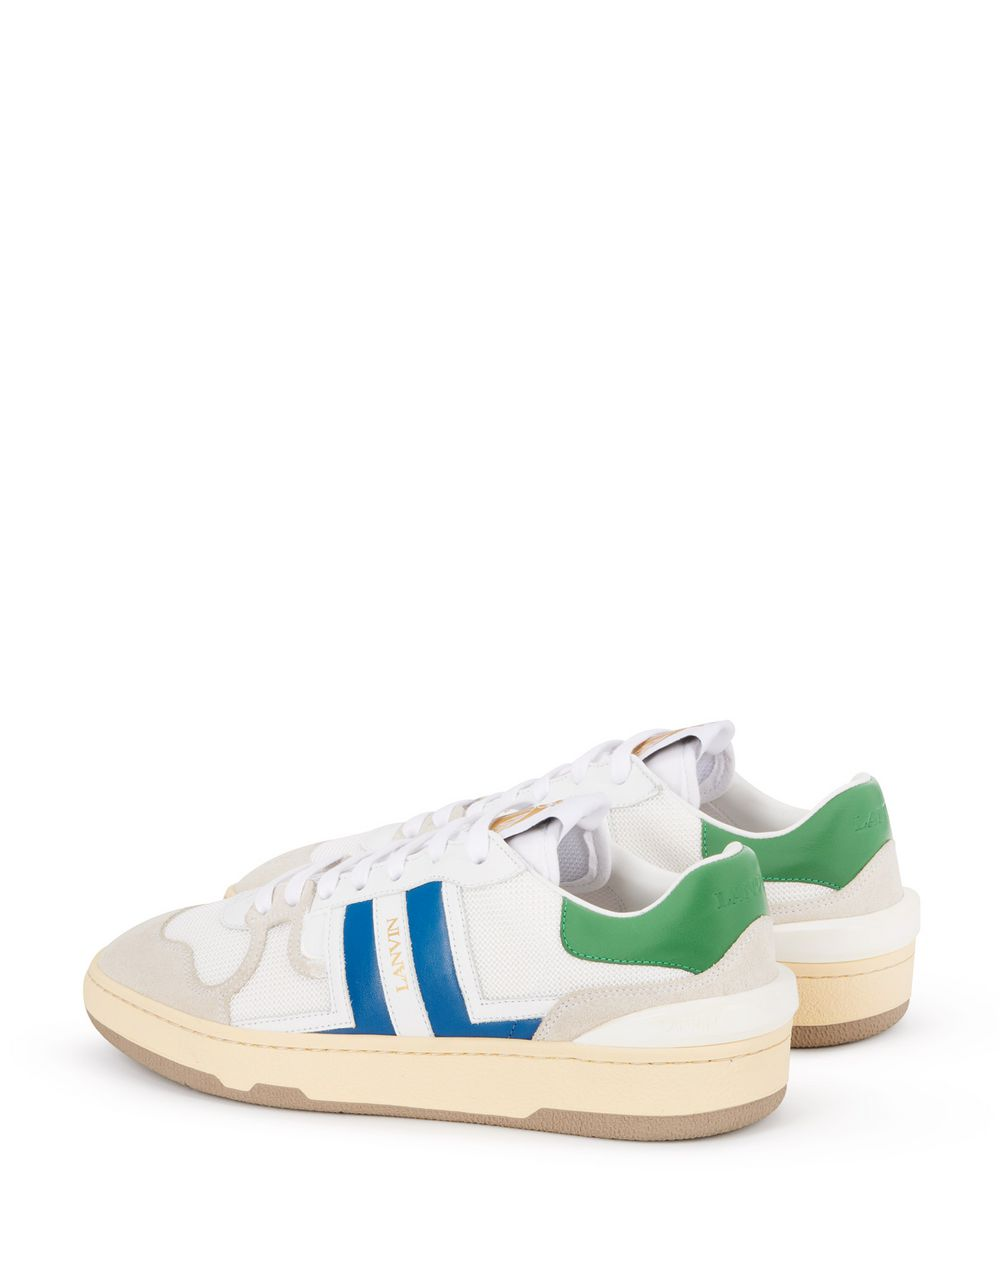 LEATHER CLAY LOW-TOP SNEAKERS - Lanvin